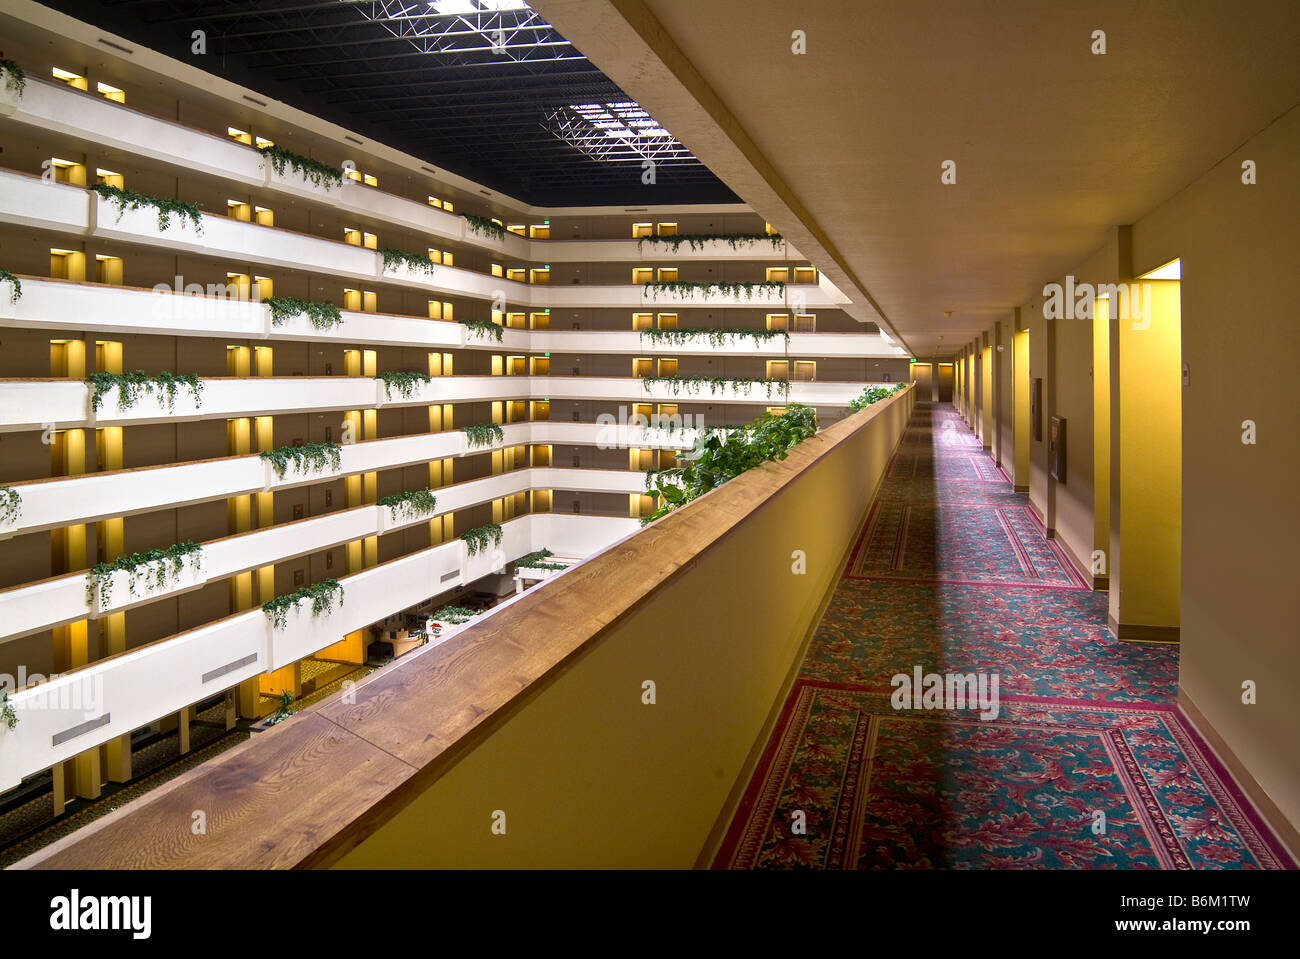 hotel interior hallway atrium fresno california usa stock photo